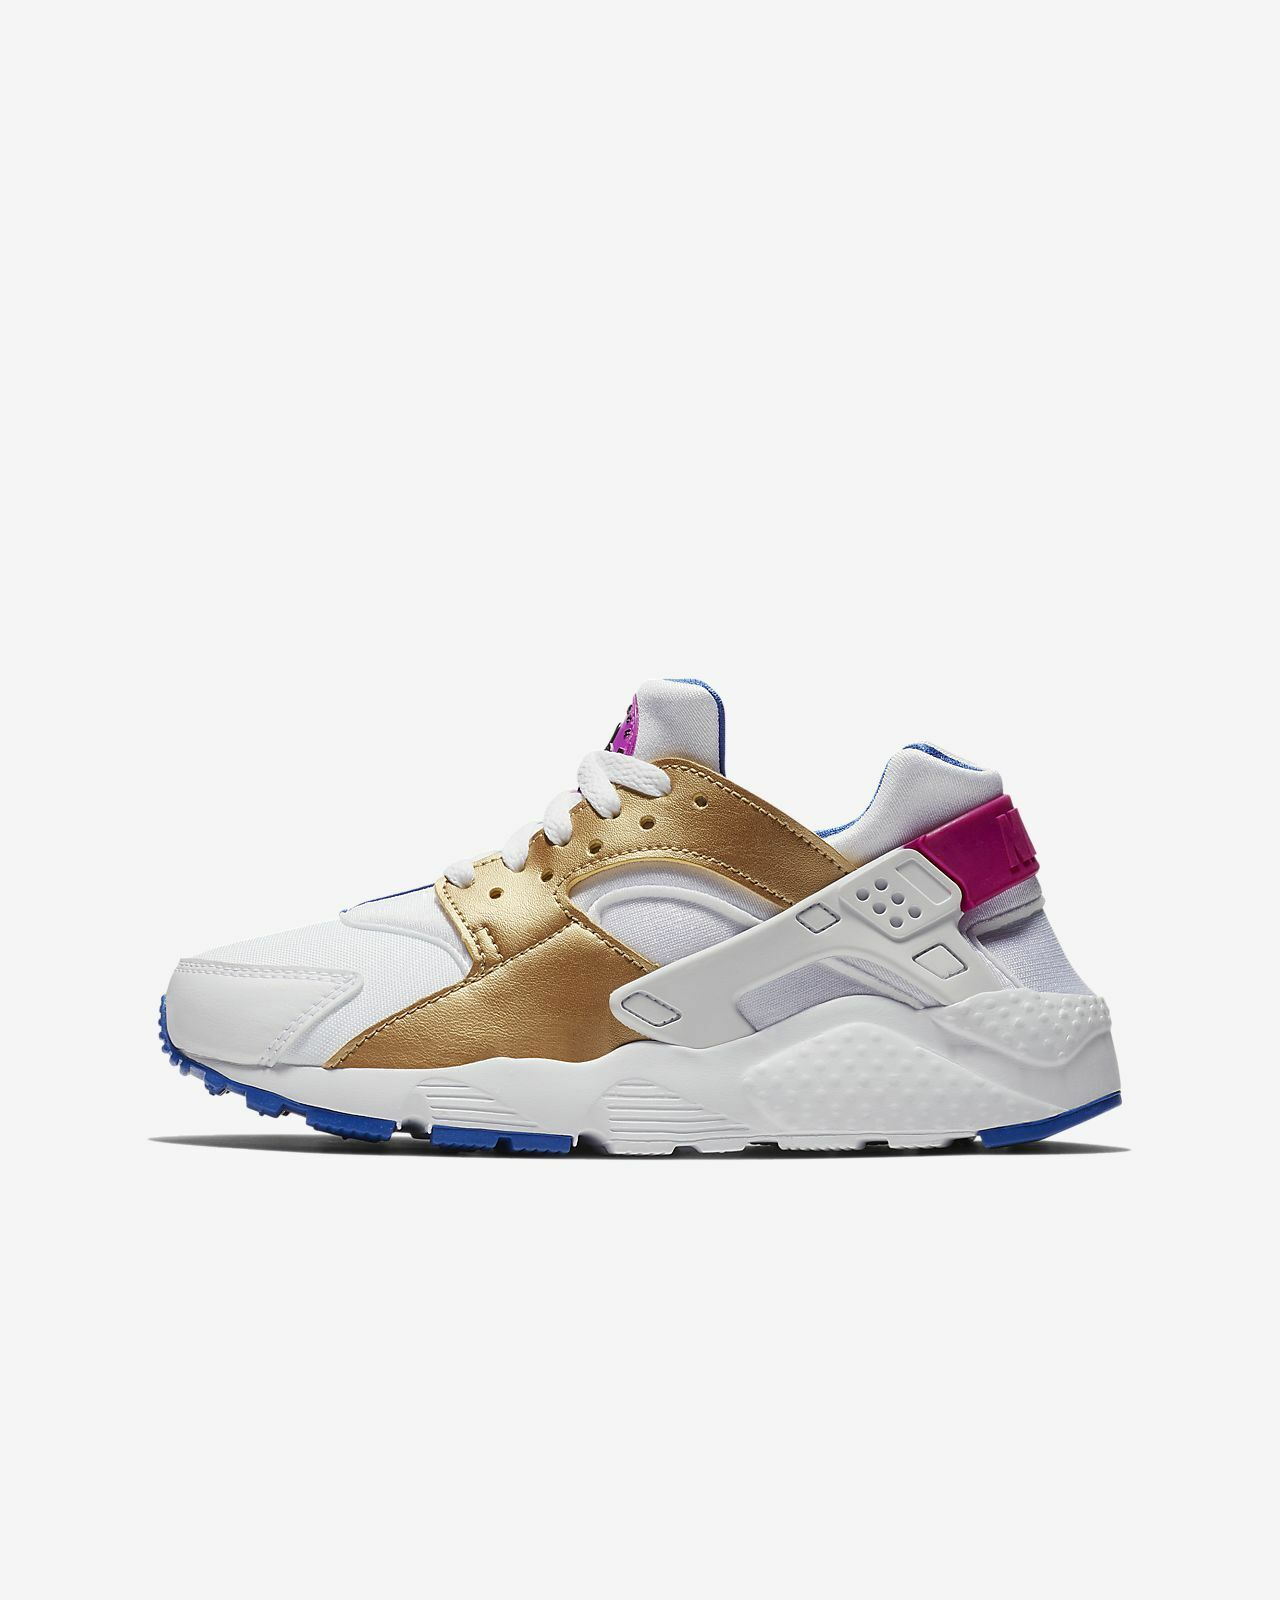 Nike Nike Nike Air Huarache White Racer Blue Fuchsia Pink Purple Metallic Gold 654280-109 47a33f